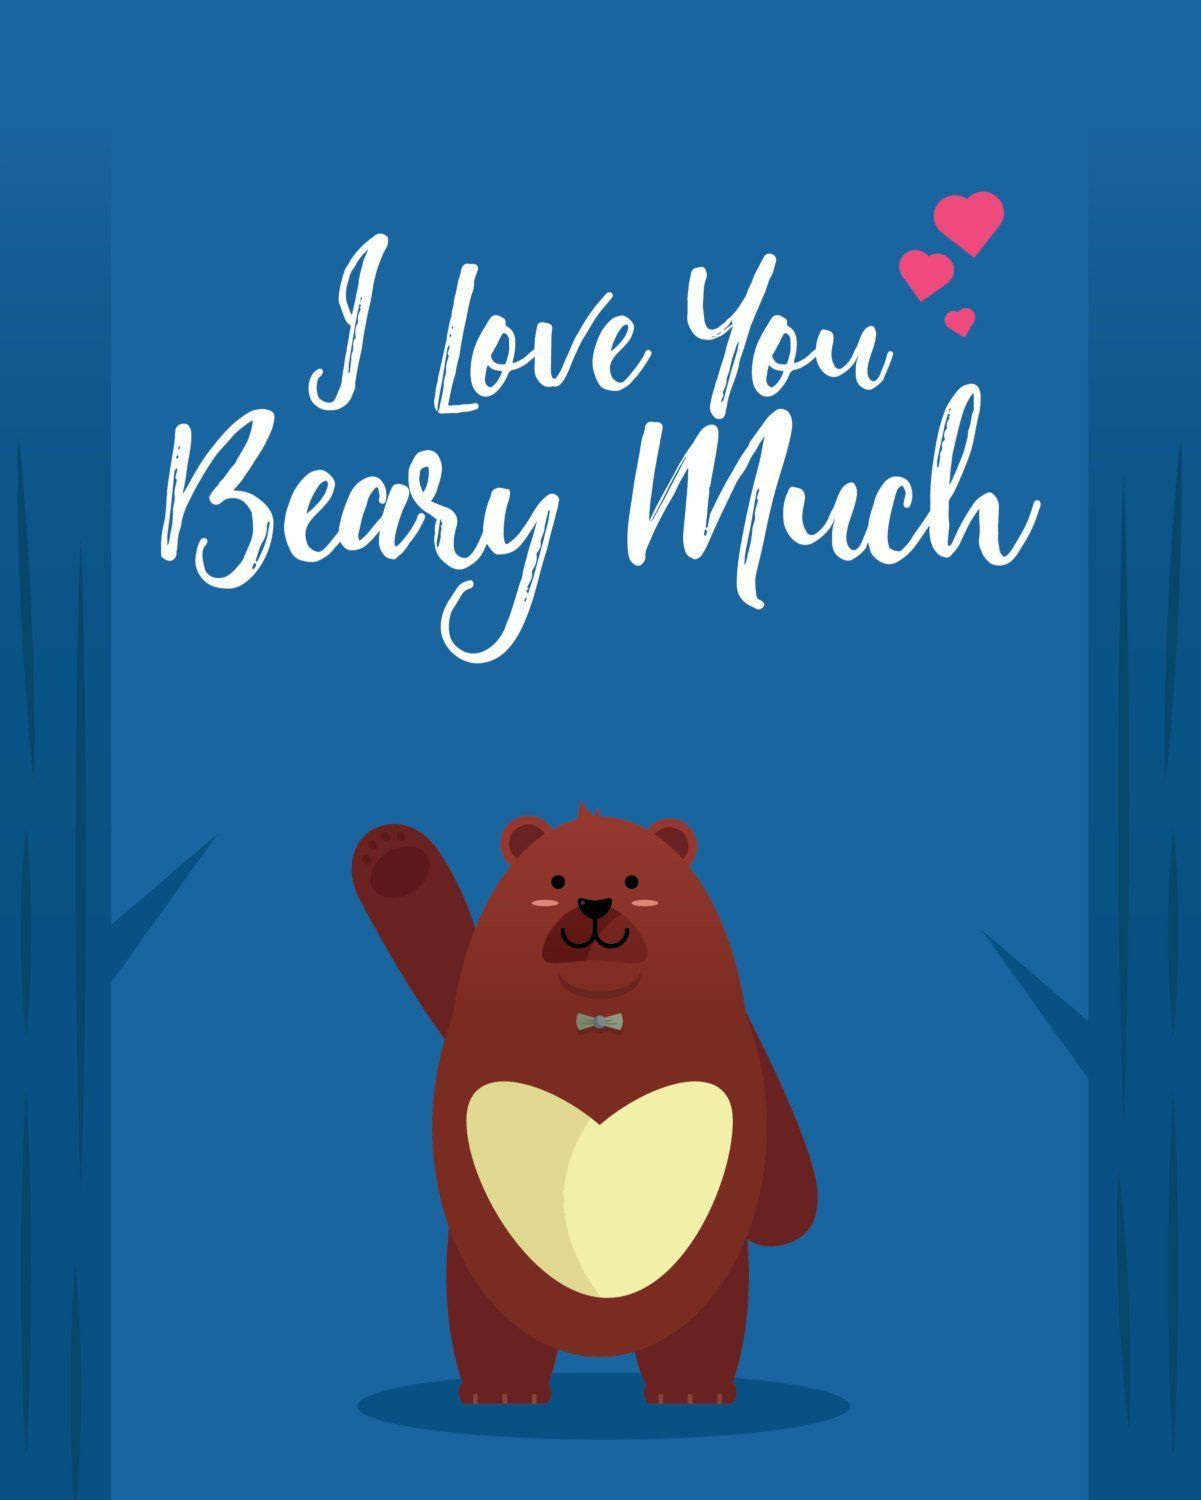 I love you beary much downloadable greeting cards products i love you beary much downloadable greeting cards m4hsunfo